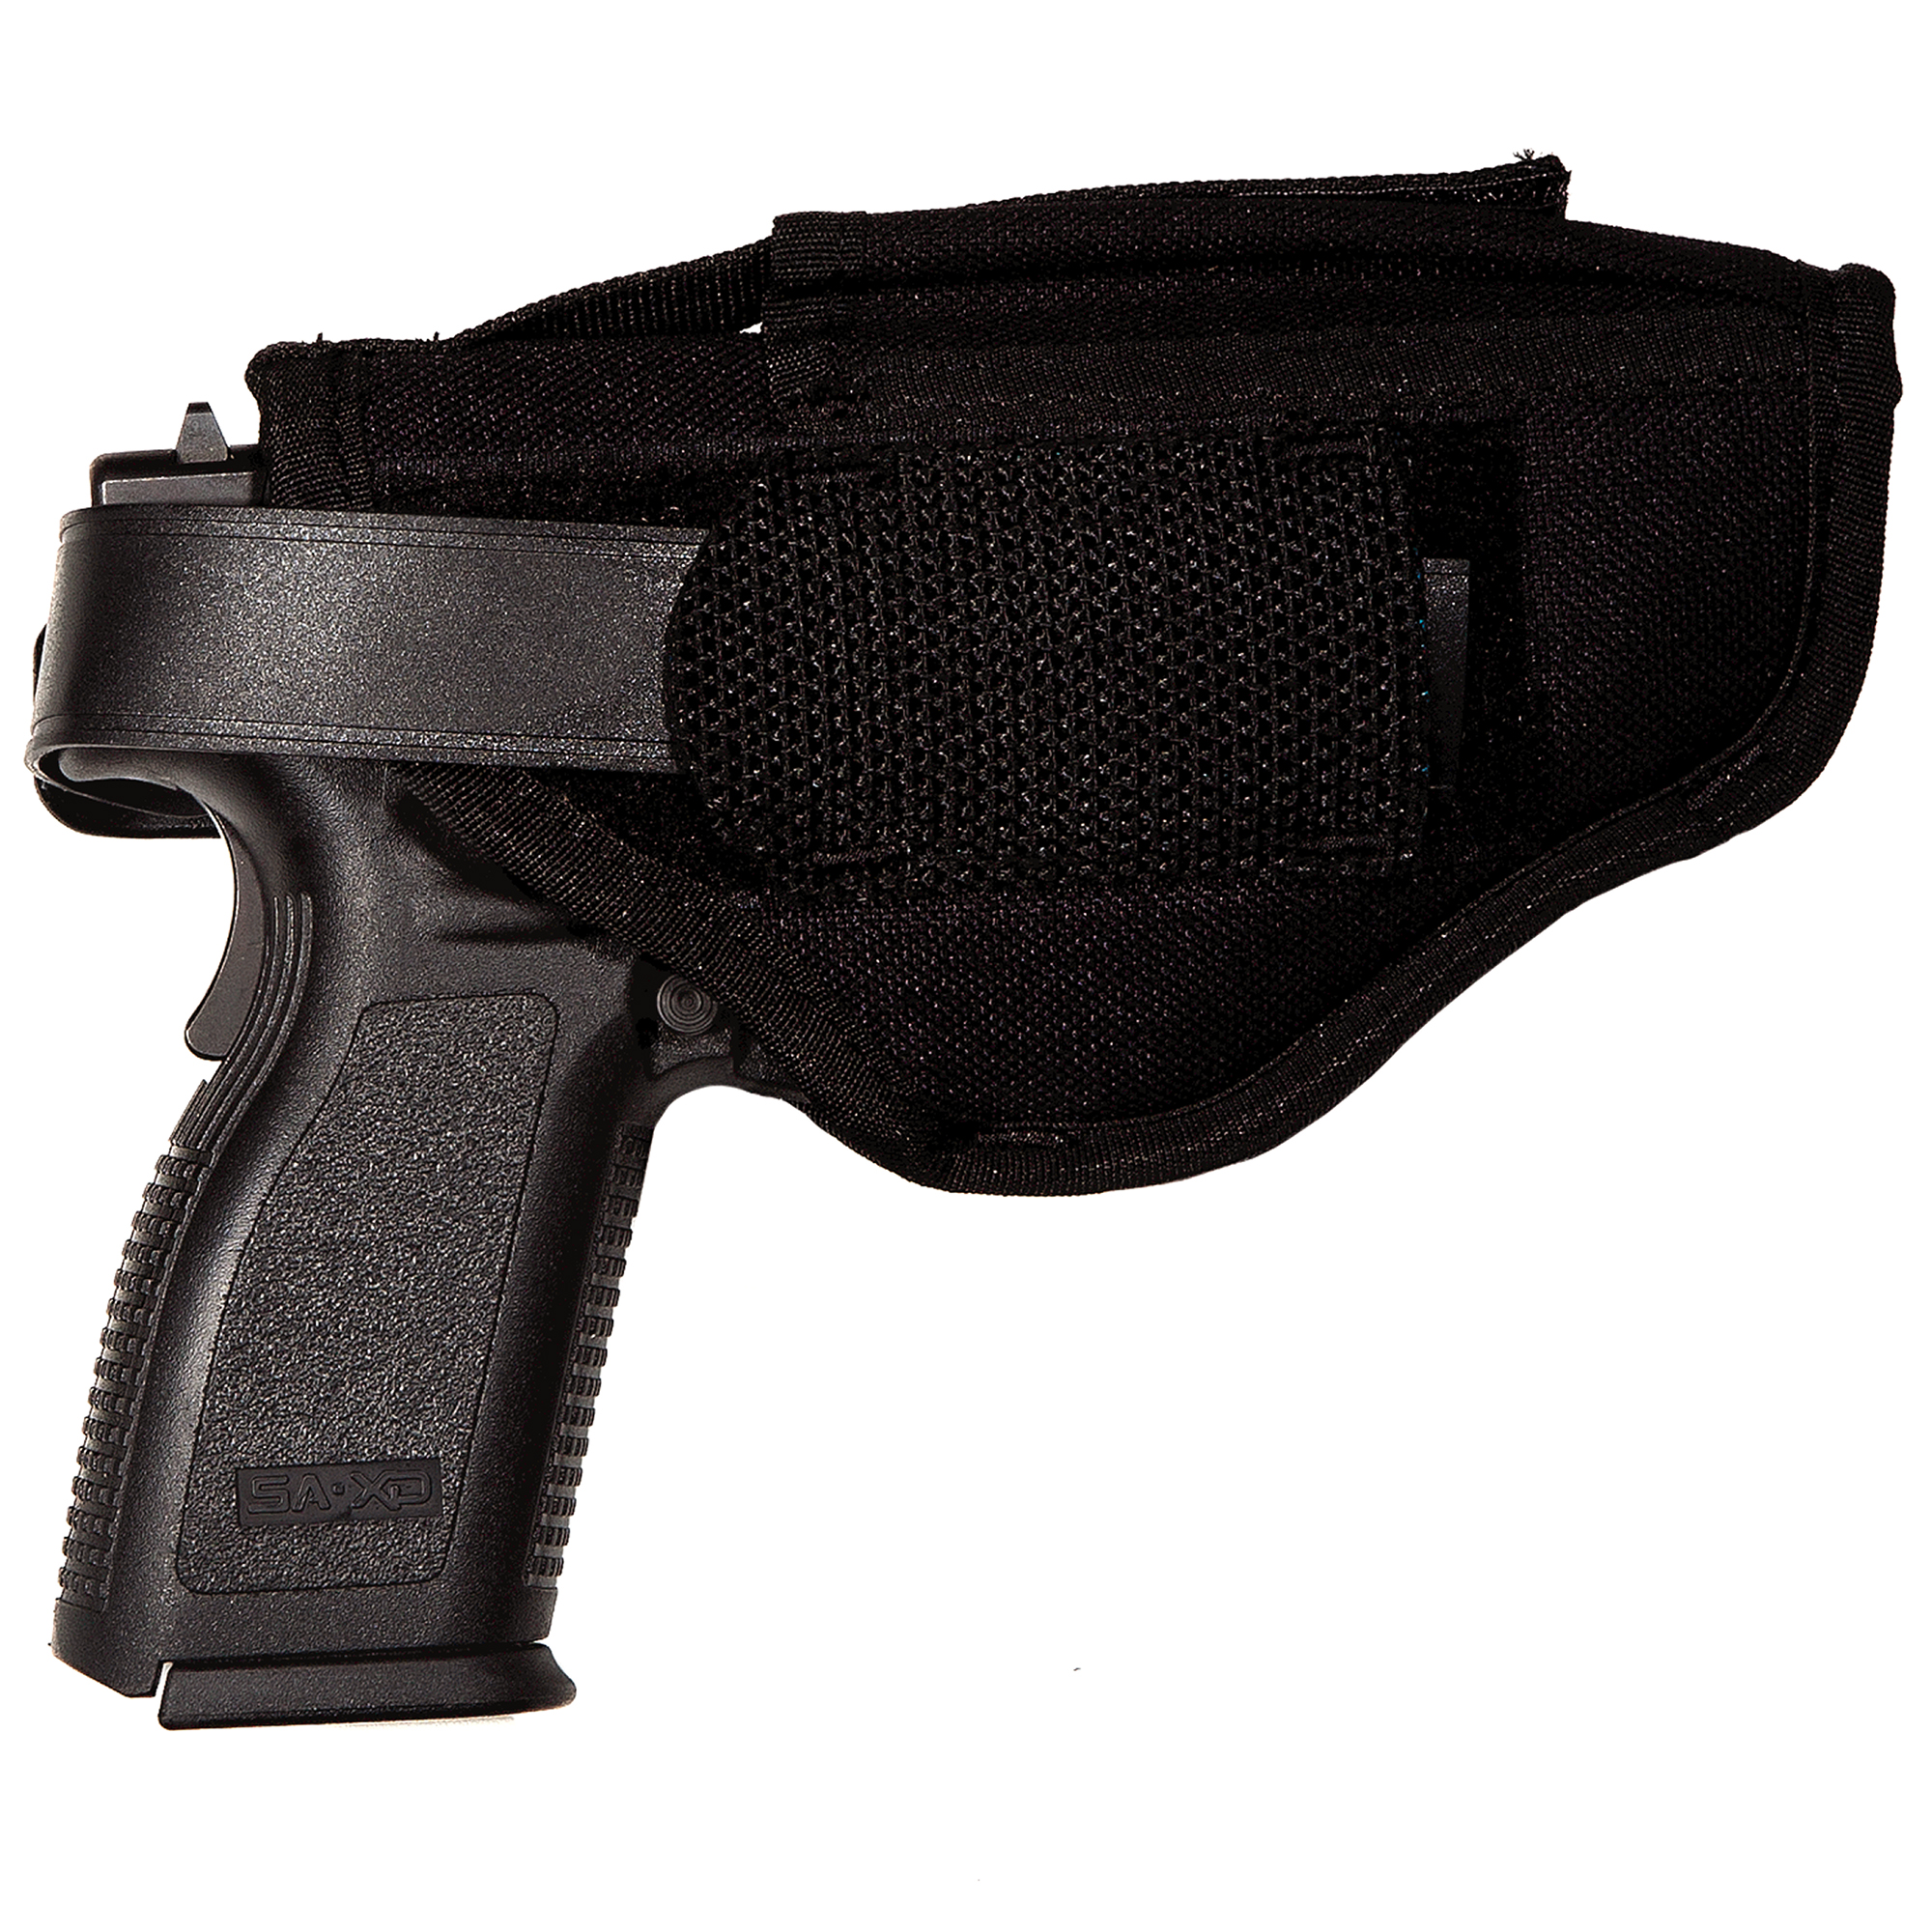 Uncle Mike's Sidekick Ambidextrous Hip Holster, 3-3/4″ – 4-1/2″, Large Autos